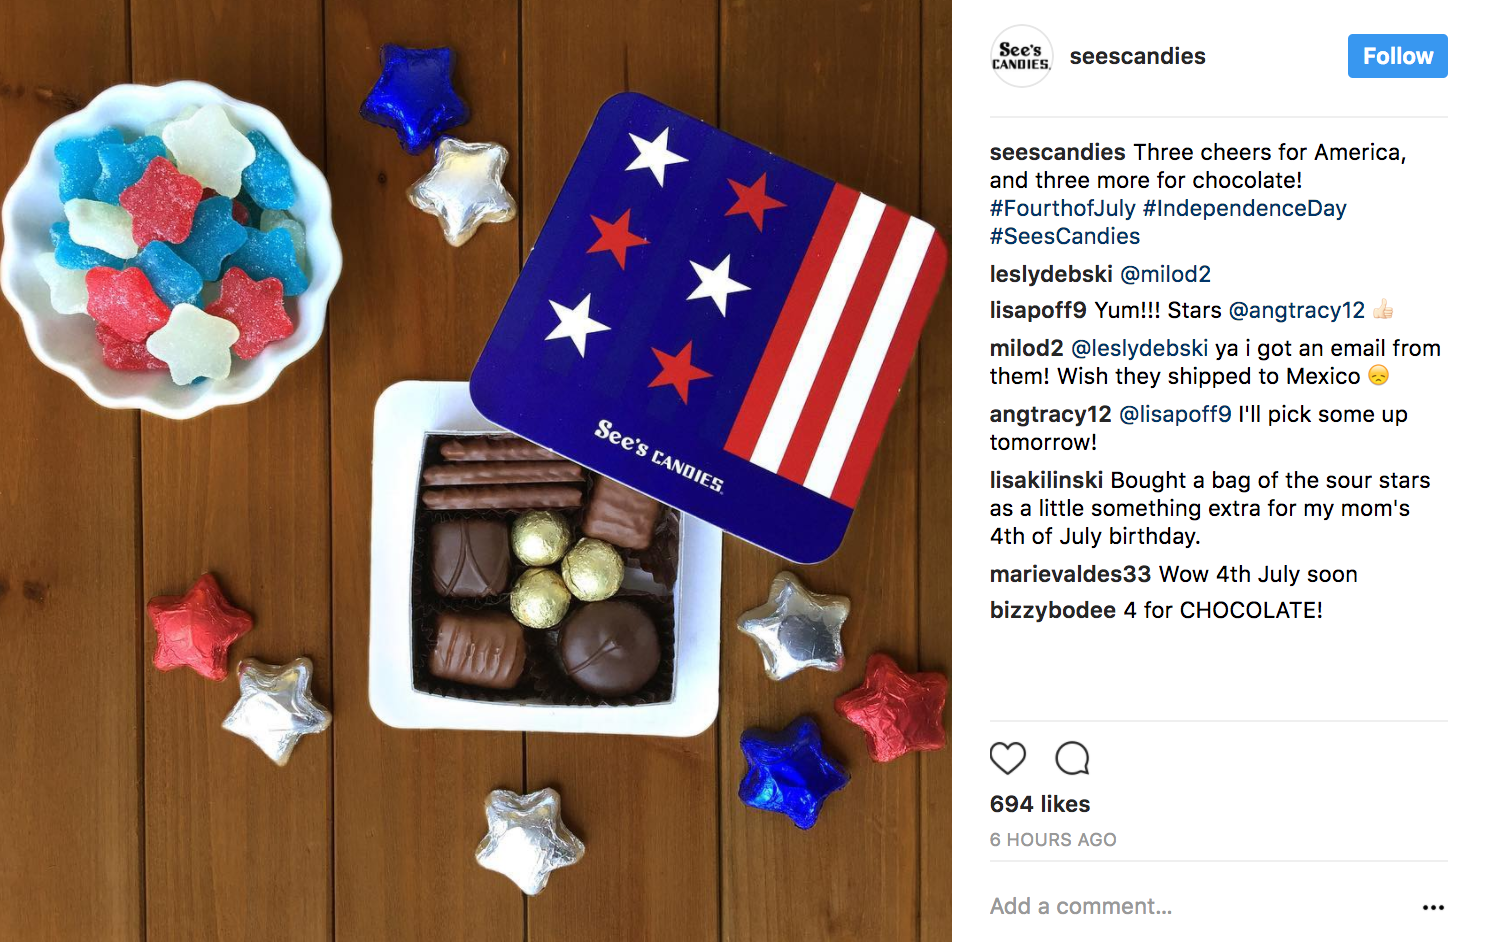 4th of July hashtags